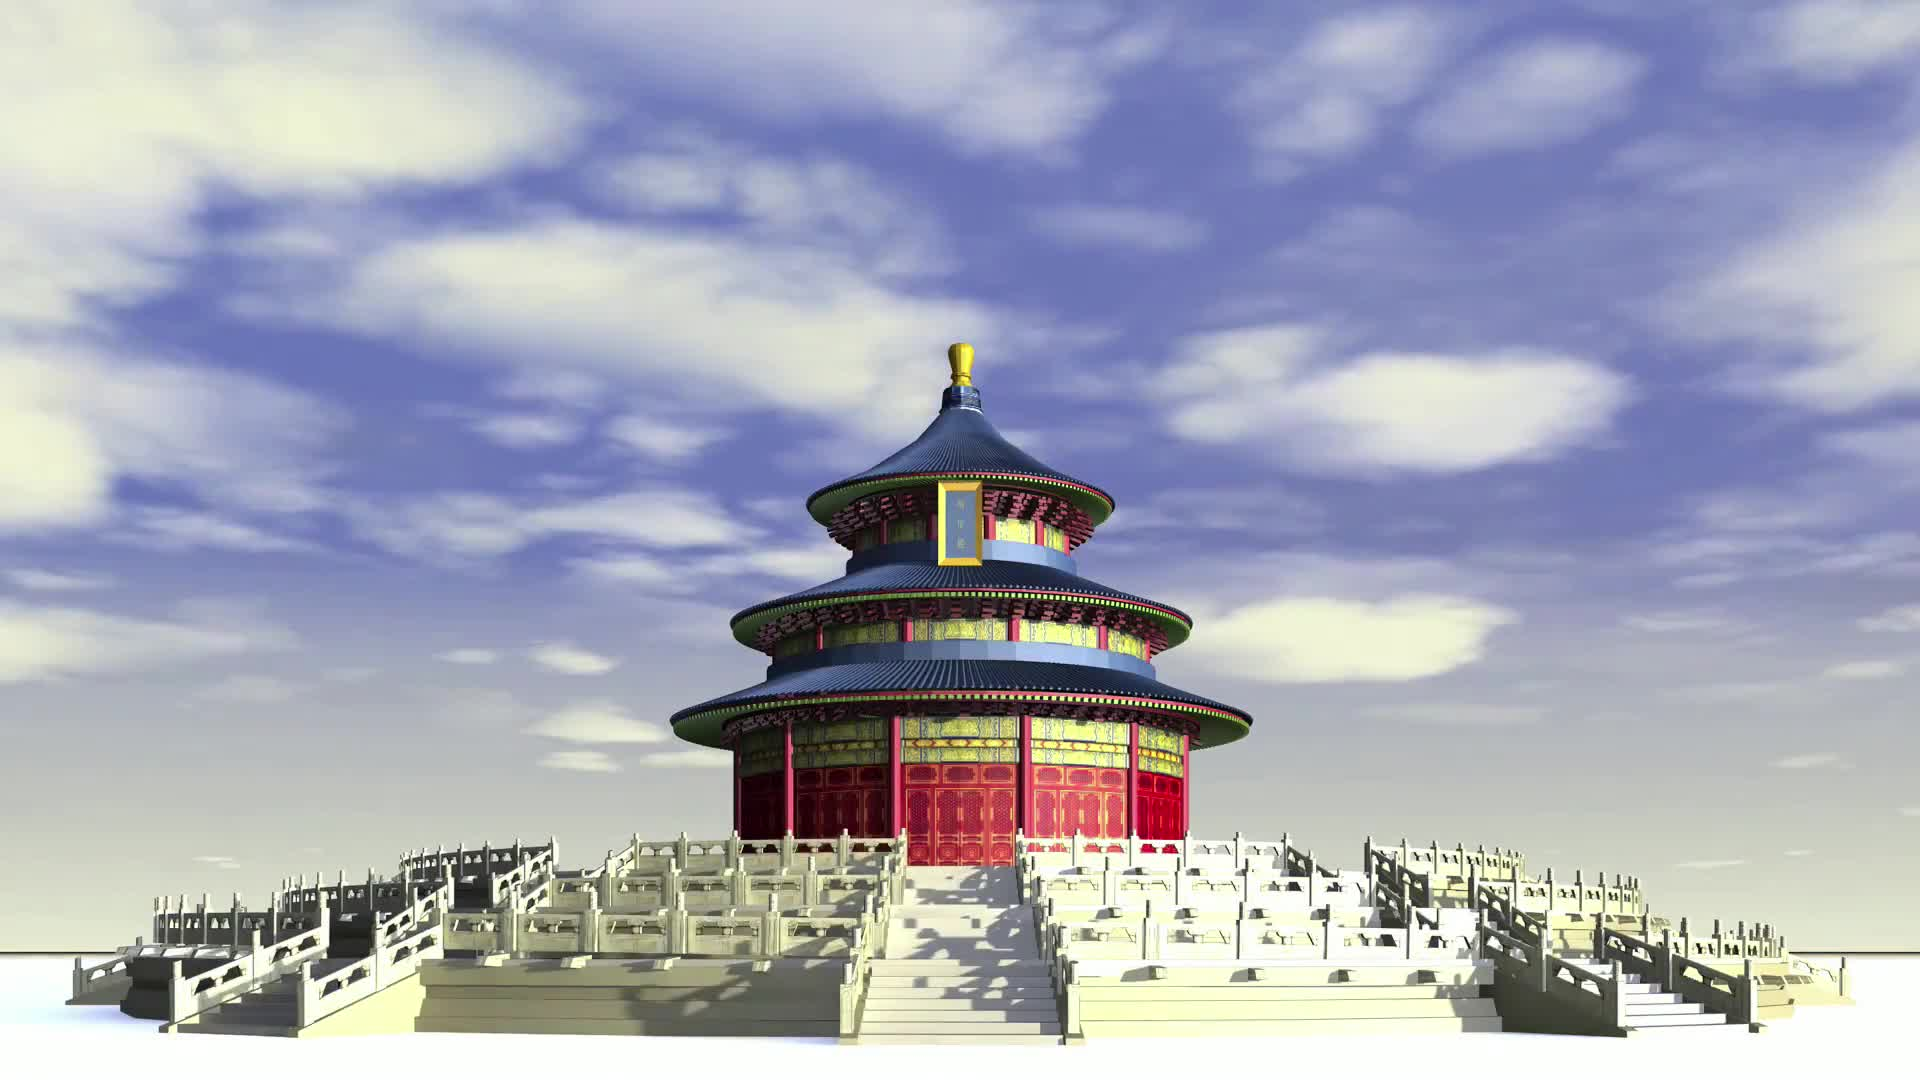 Temple of heaven temple china beijing art